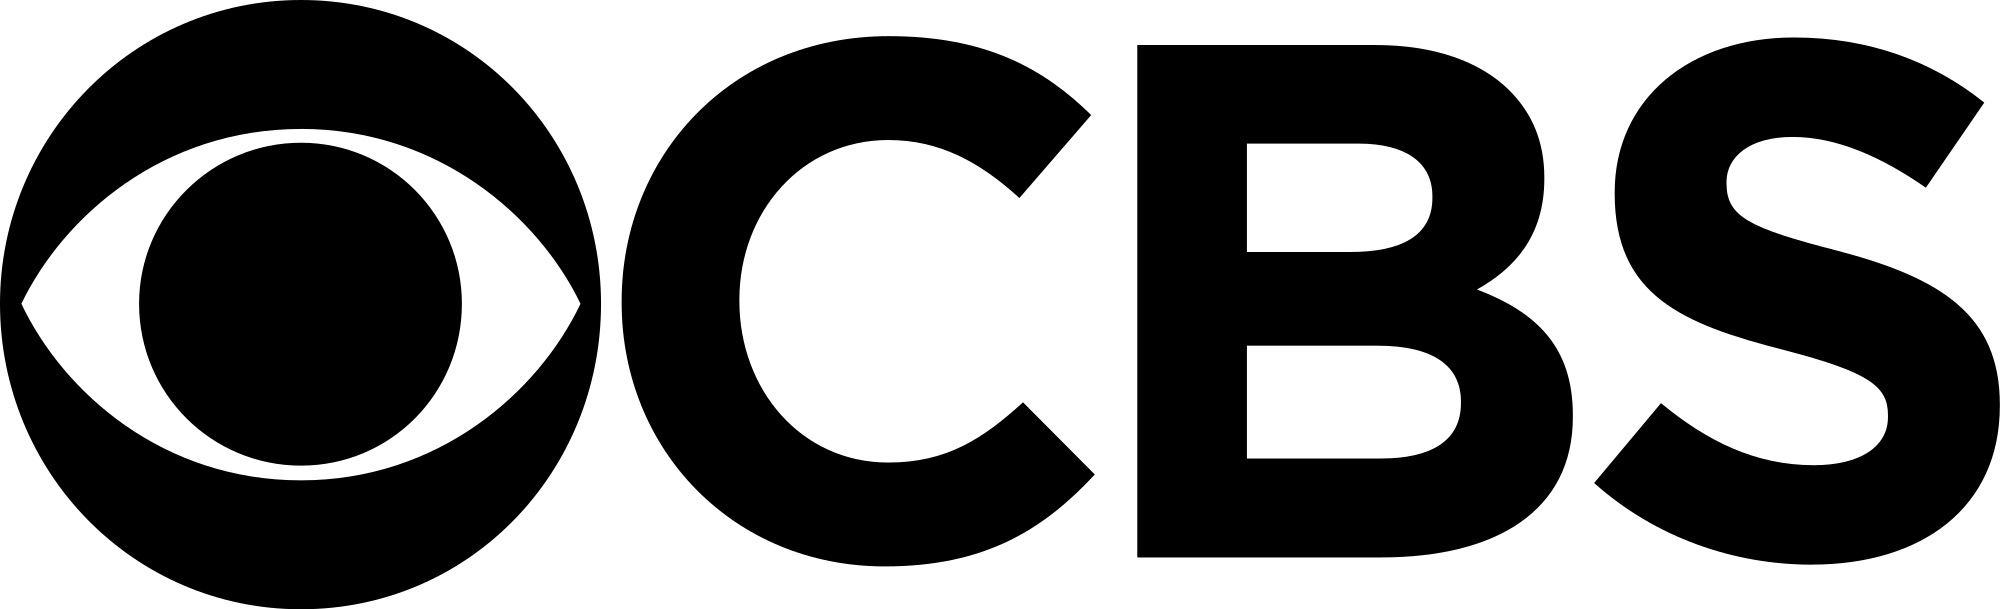 Cbs logo png. File svg wikimedia commons